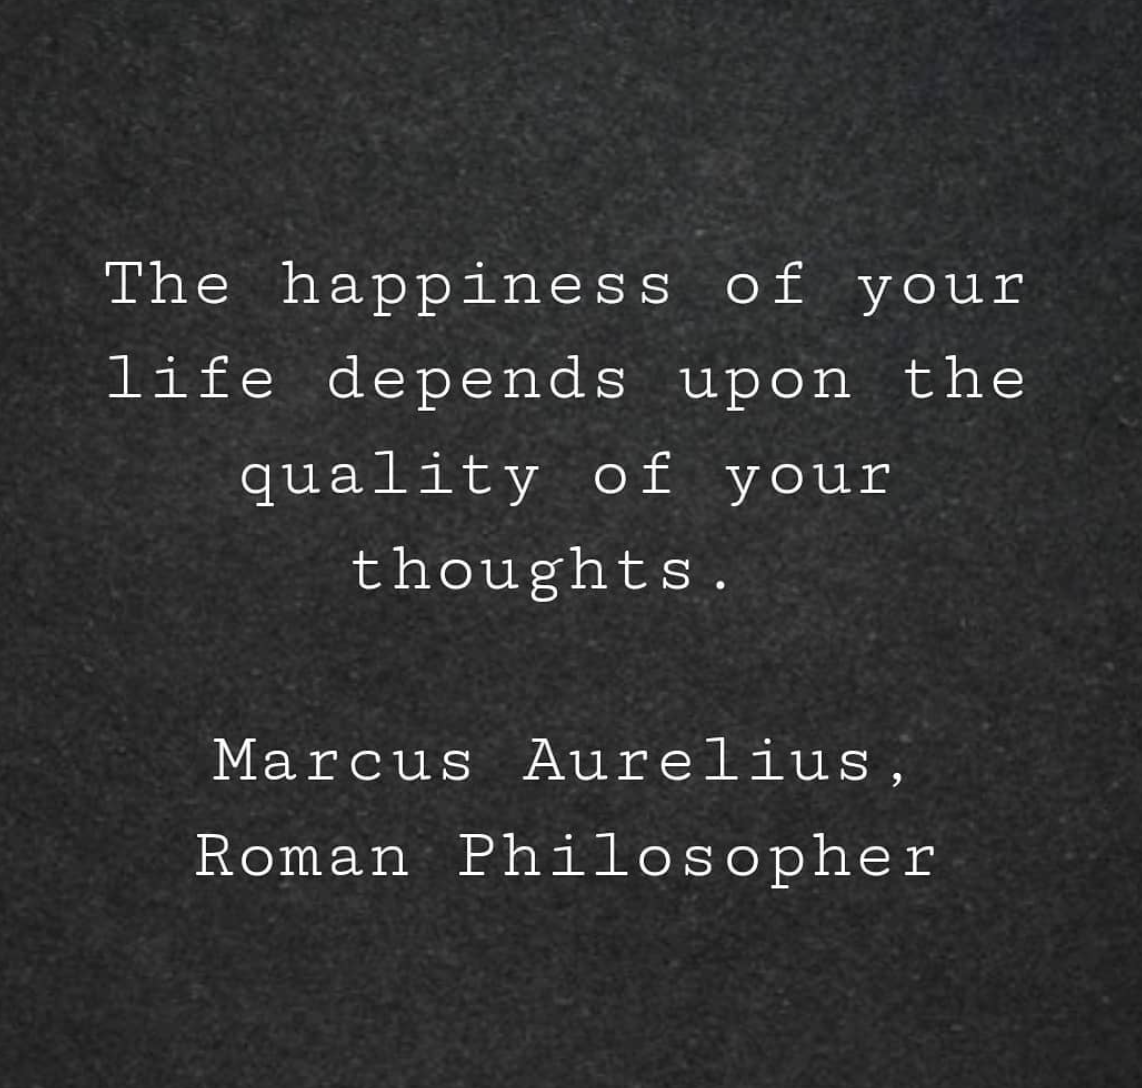 [Image] The happiness of your life depends upon the quality of your thoughts.